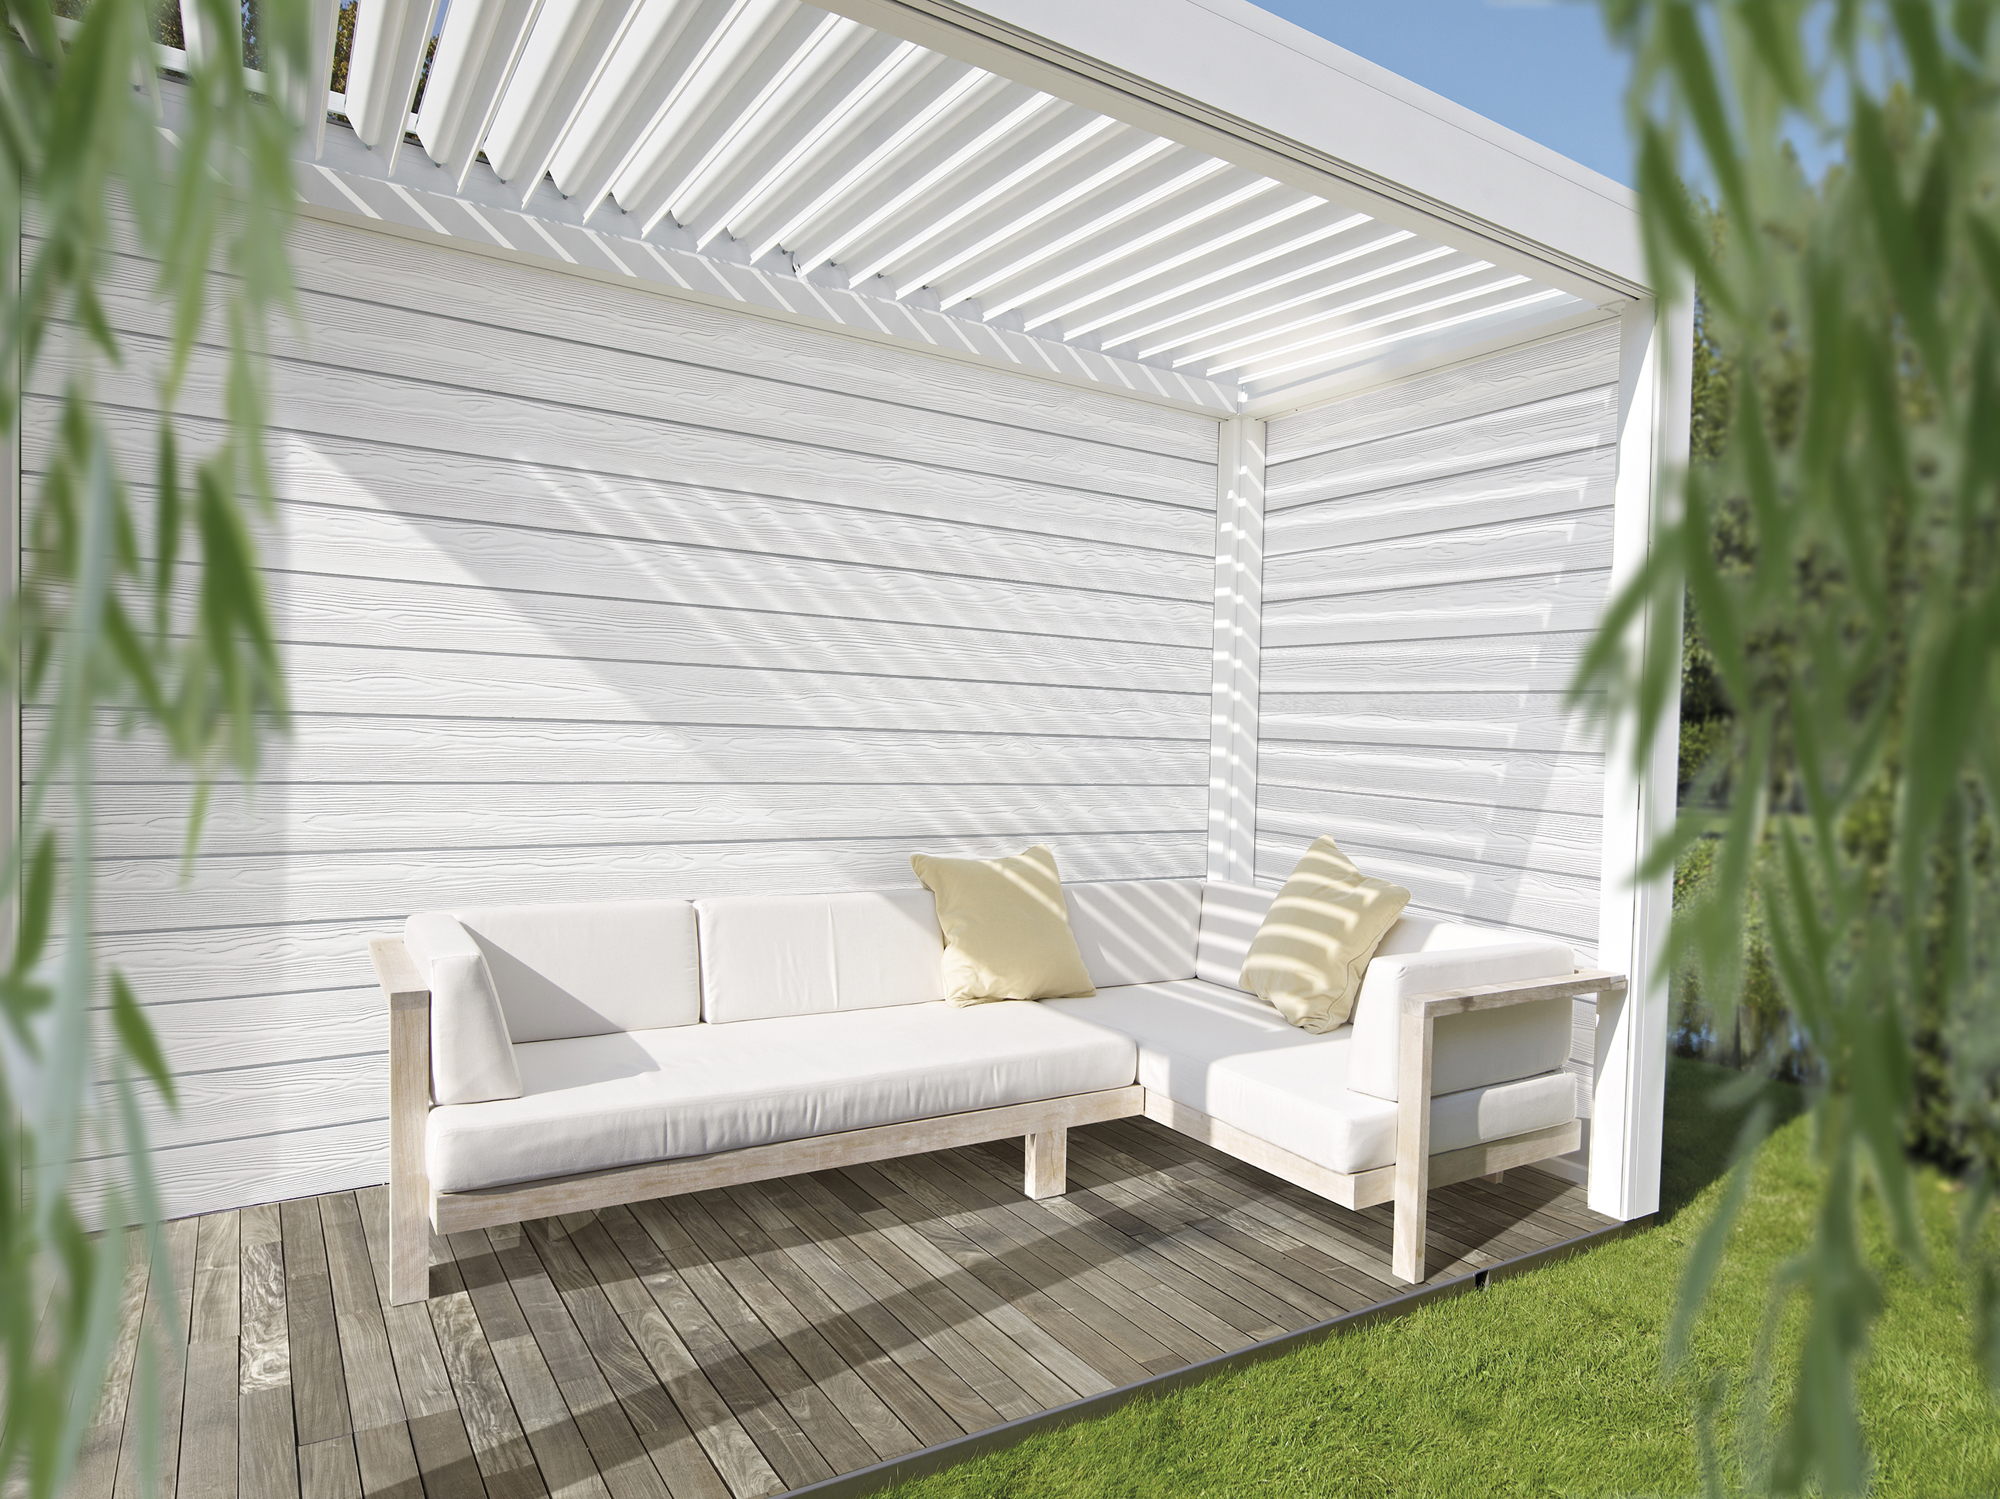 Unique Cedral Click Has Been Used To Create A Stunning Pergola Cedral  With Interesting Cedral Click Has Been Used To Create A Stunning Pergola Cedral Click  White With Adorable Roseland Garden Also Garden Tools Storage In Addition Bay Gardens Beach Resort And Wetherspoons Covent Garden As Well As Garden Bird Netting Additionally Covent Garden Gallery From Pinterestcom With   Interesting Cedral Click Has Been Used To Create A Stunning Pergola Cedral  With Adorable Cedral Click Has Been Used To Create A Stunning Pergola Cedral Click  White And Unique Roseland Garden Also Garden Tools Storage In Addition Bay Gardens Beach Resort From Pinterestcom